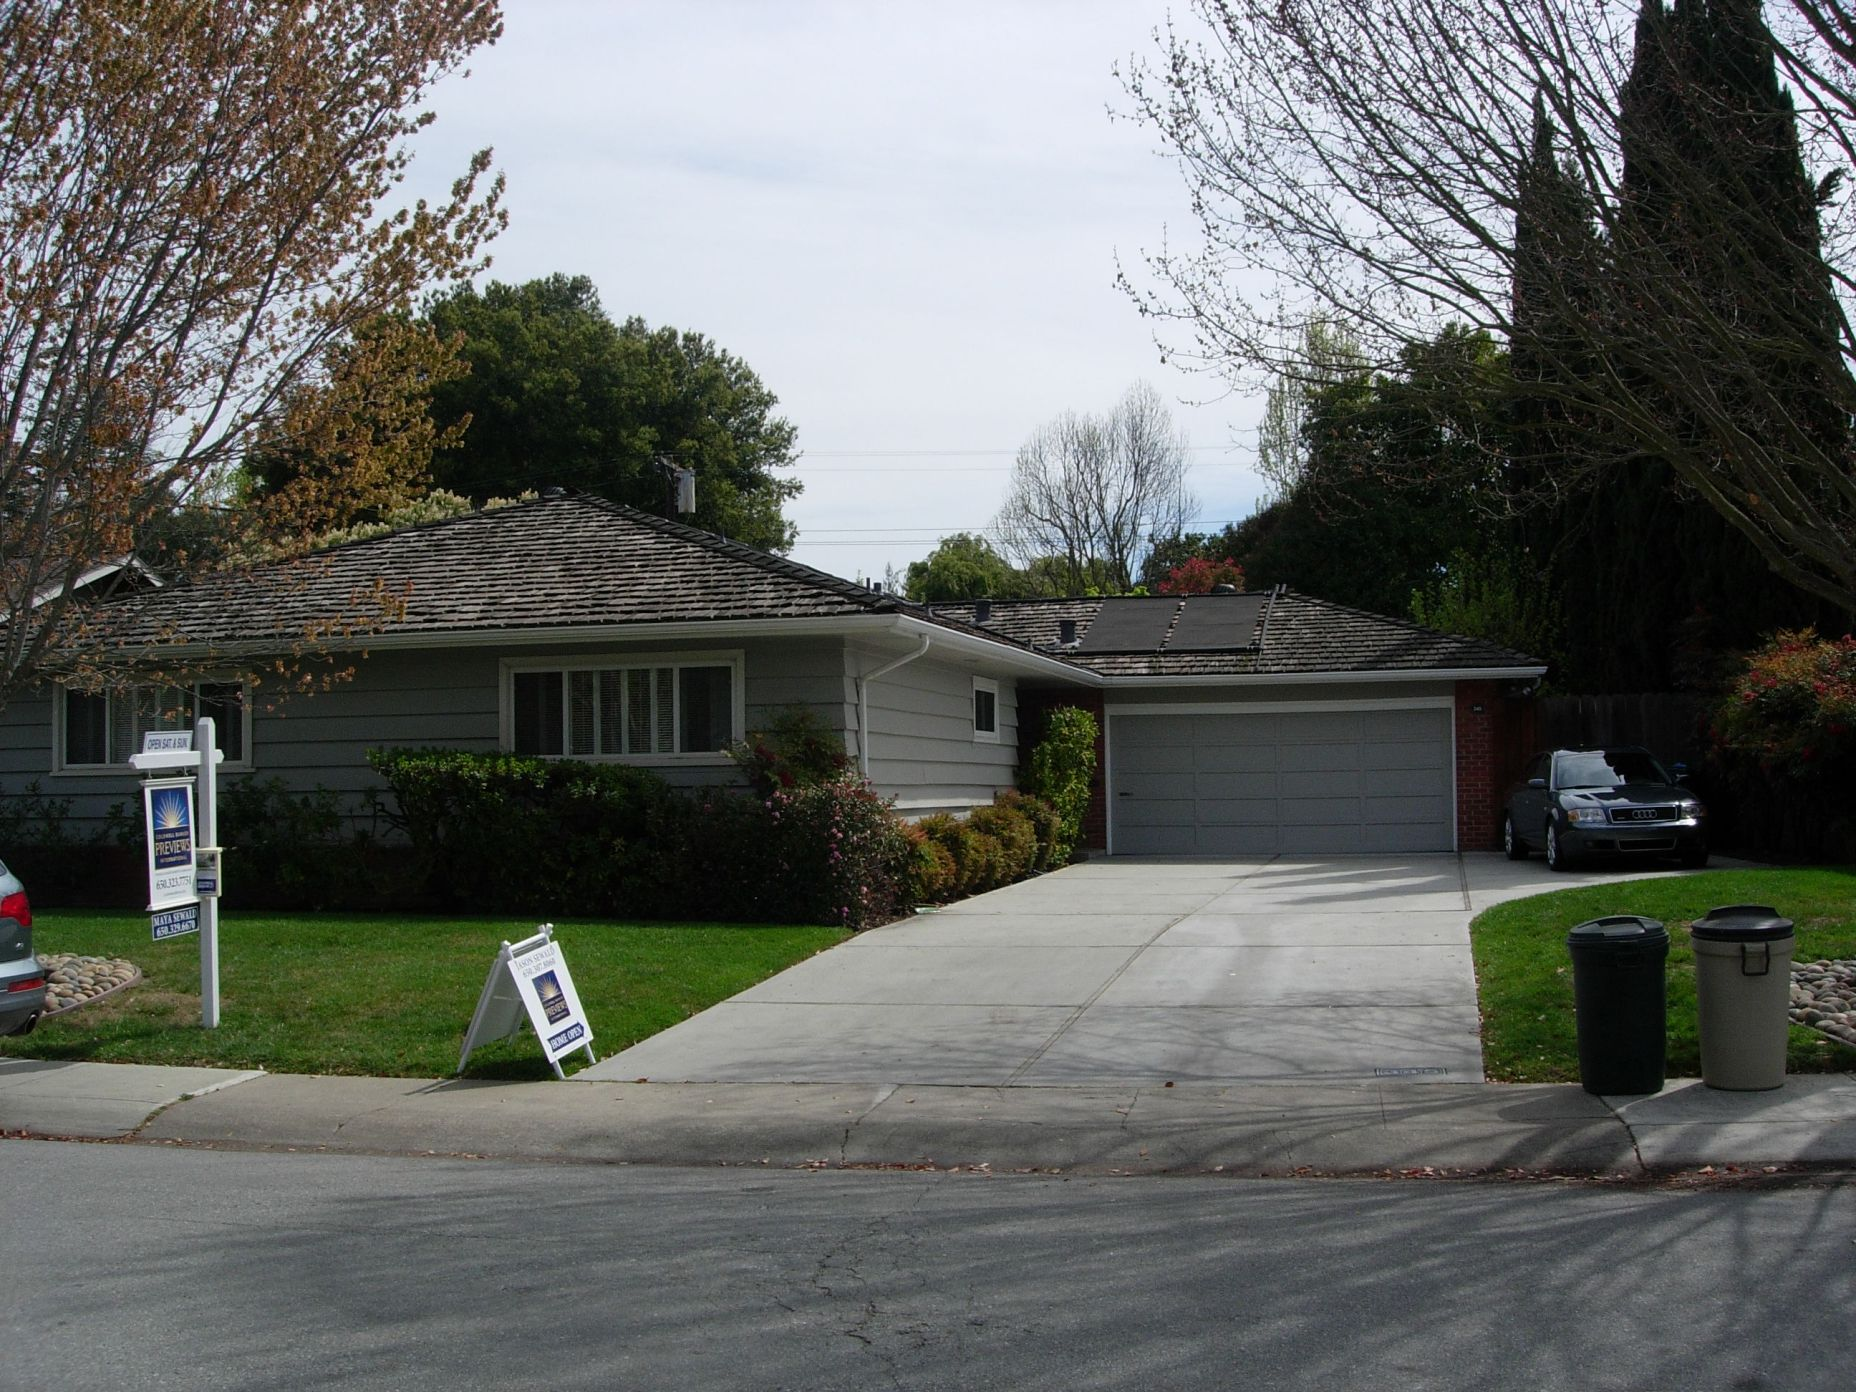 345 Claremont Way, Menlo Park